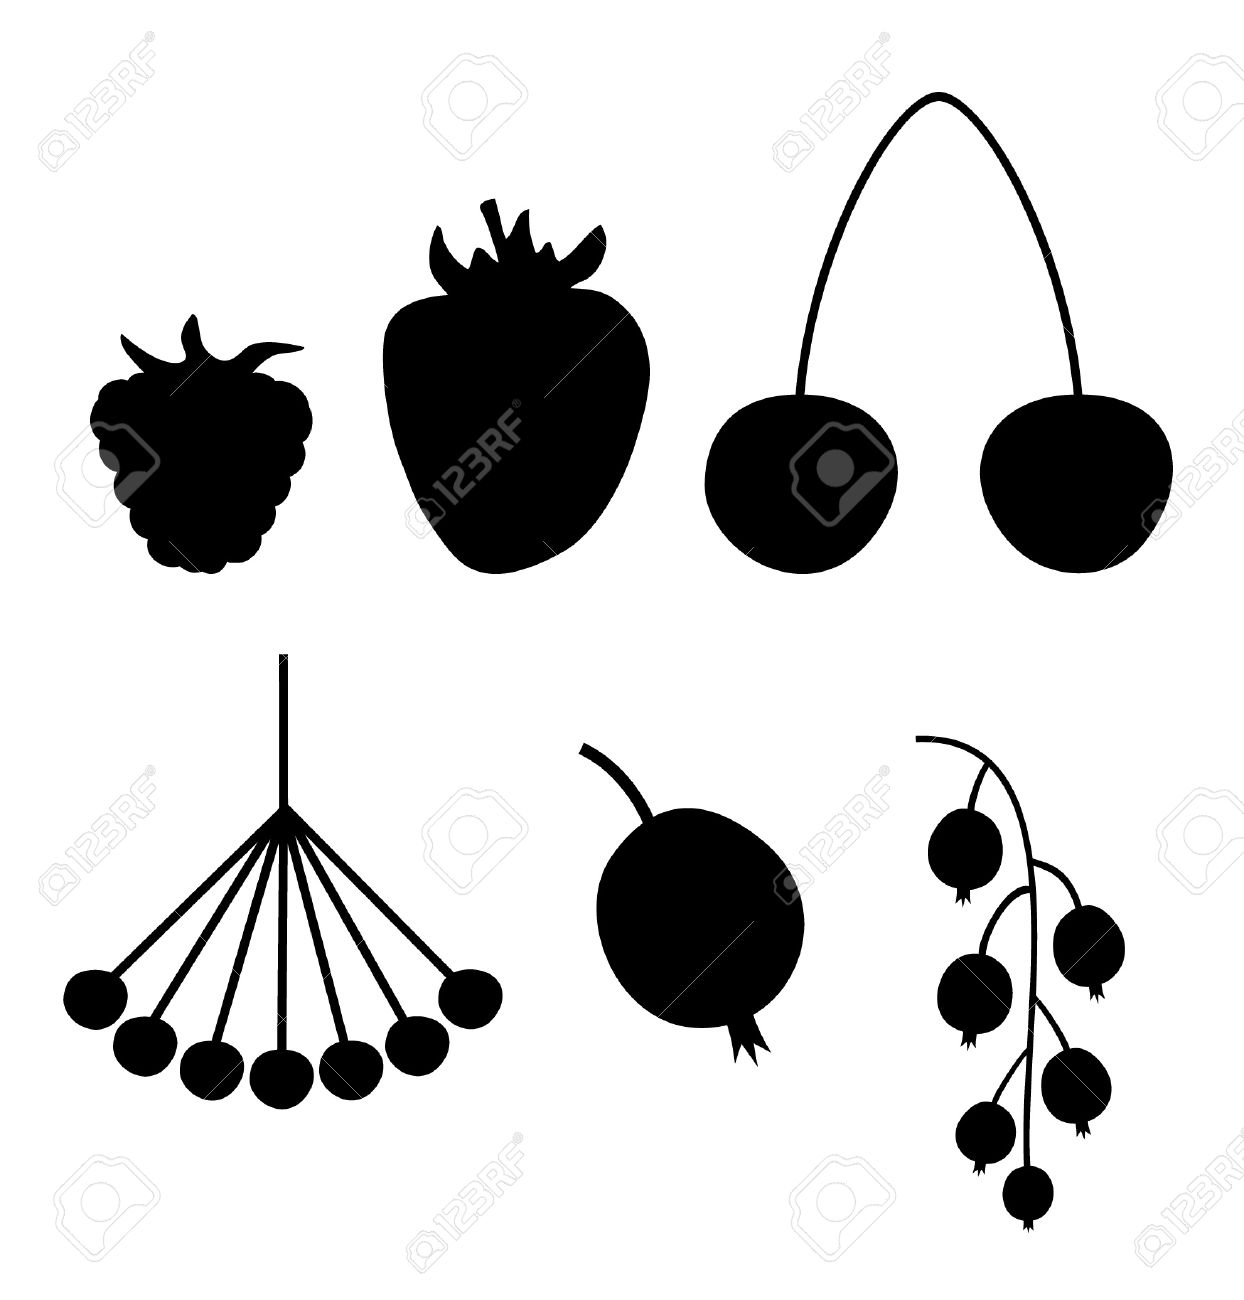 Berries clipart vector. Berry currant pencil and